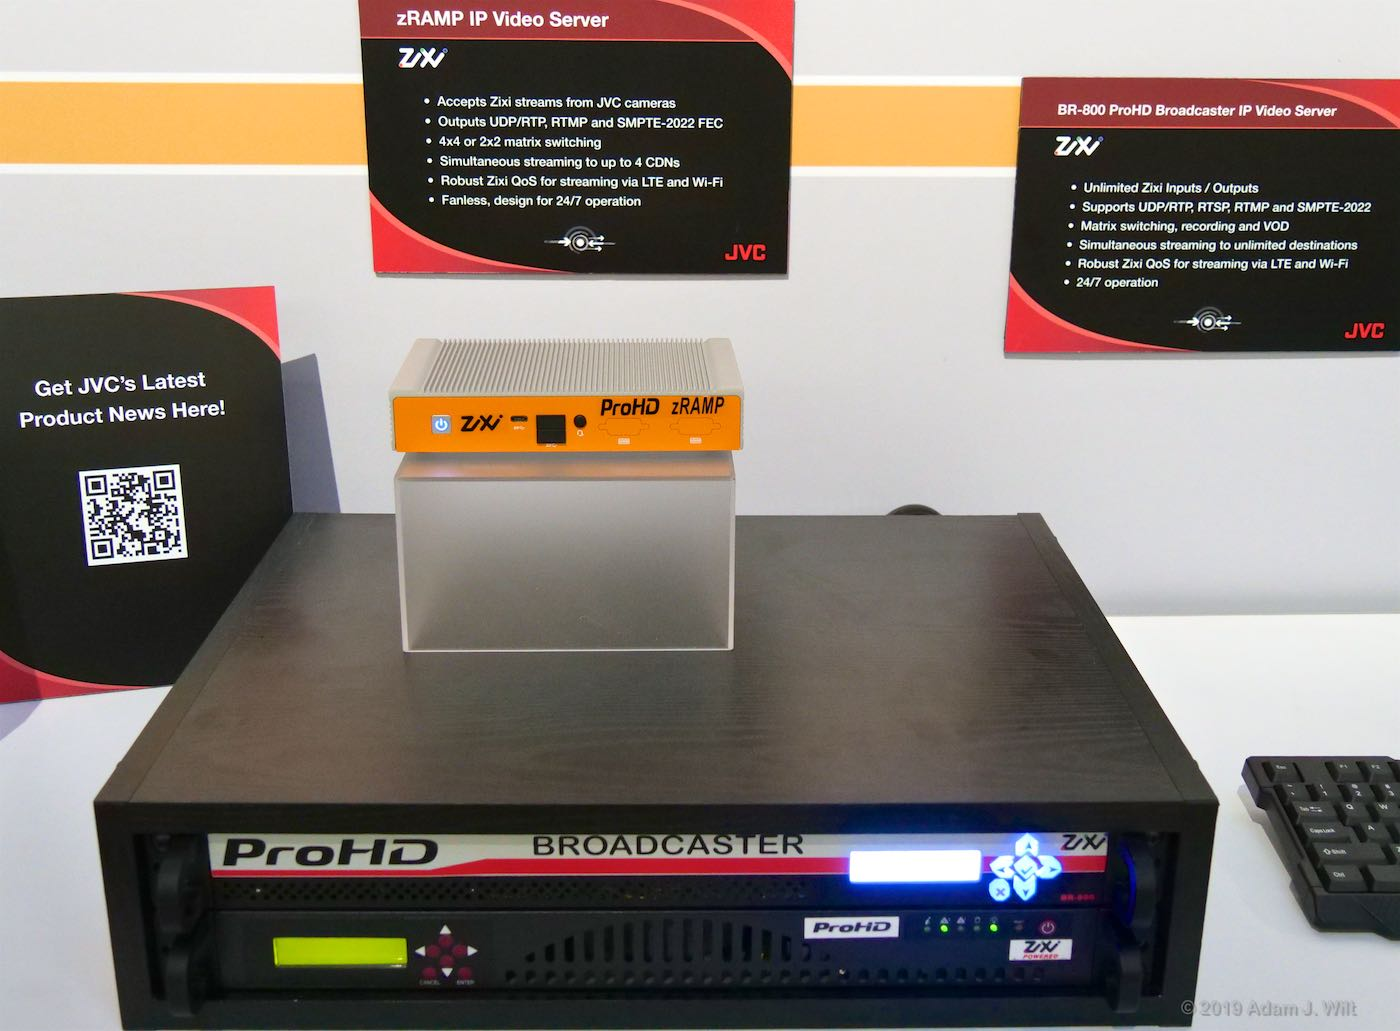 The cameras are designed to work with JVC's ProHD servers with Zixi